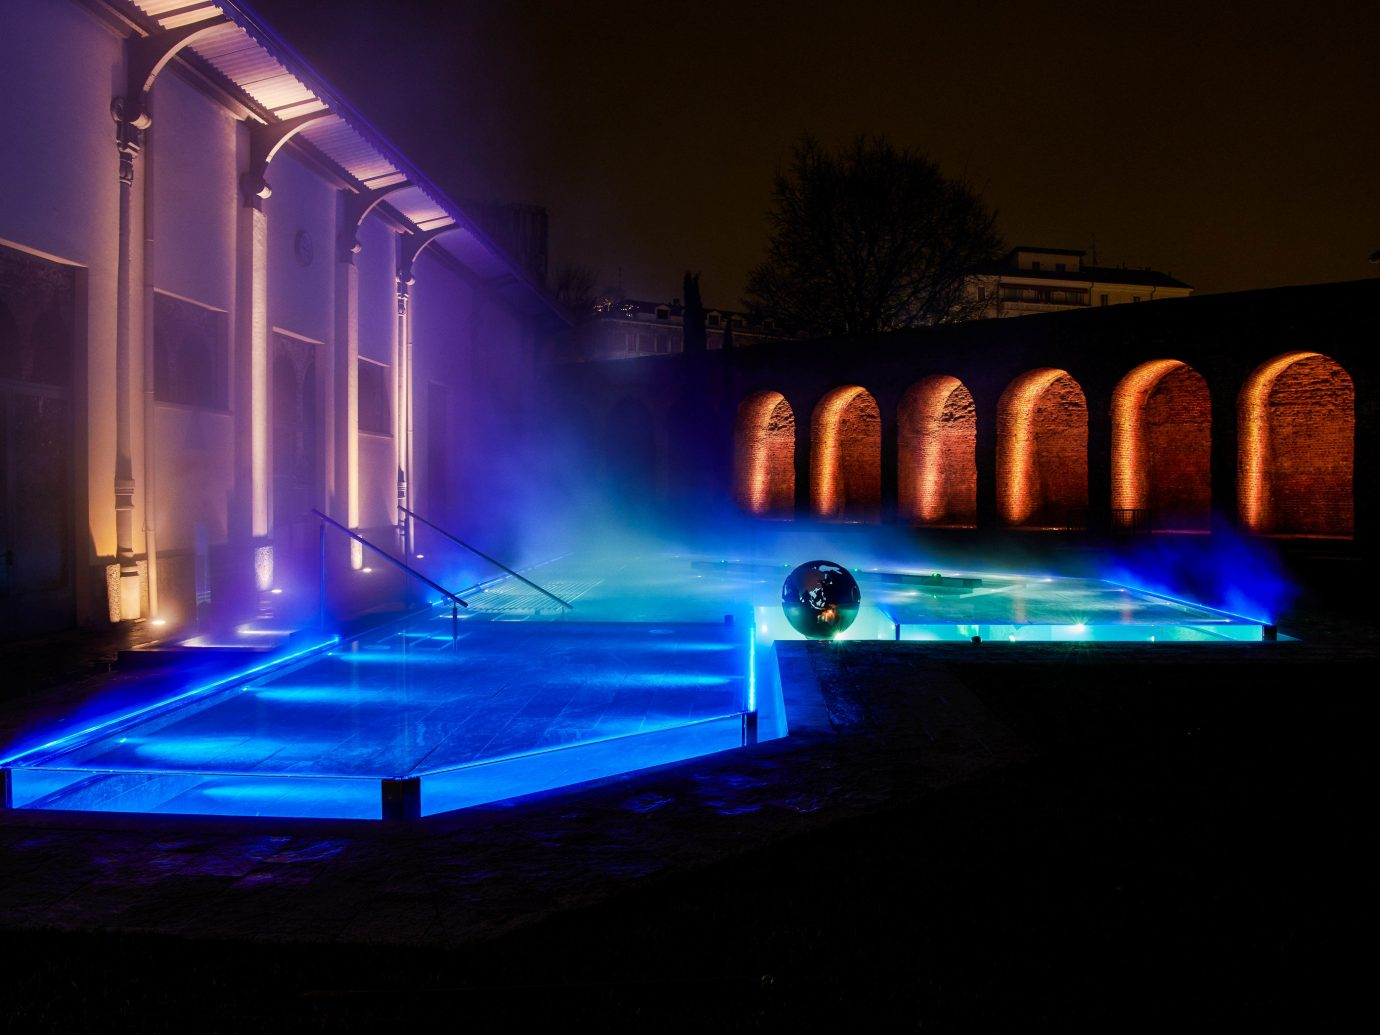 Arts + Culture Italy Milan water light lighting night reflection water feature fountain swimming pool darkness landscape lighting midnight theatrical scenery